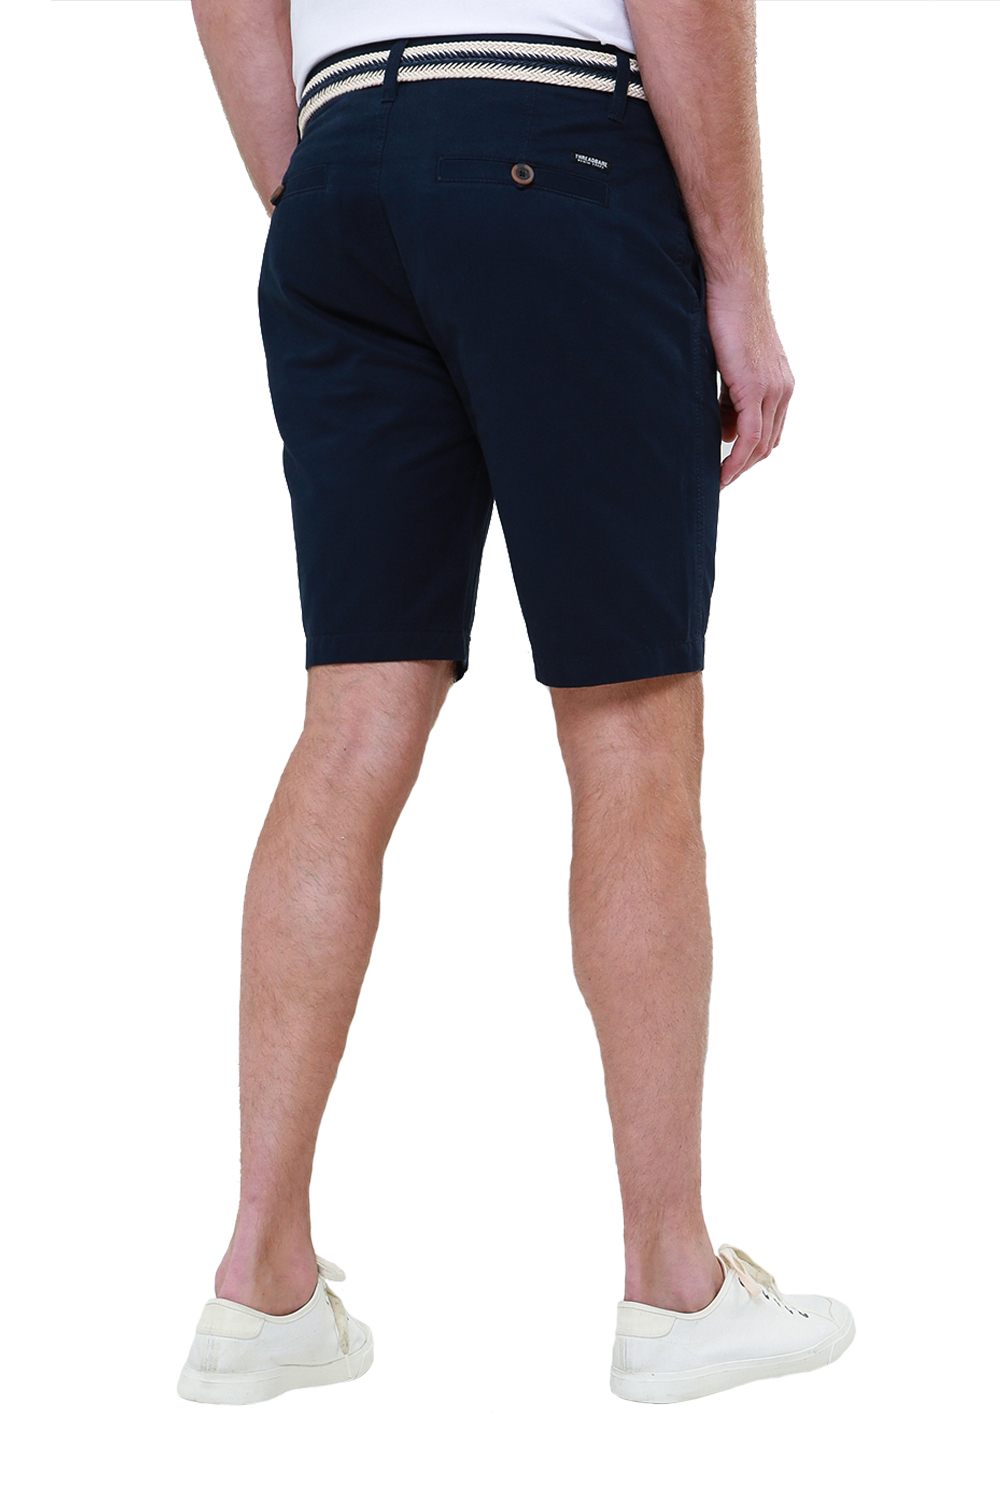 Threadbare-Mens-Slim-Fit-Belted-Chino-Shorts-Summer-Casual-Cotton-Smart-Bottoms thumbnail 23